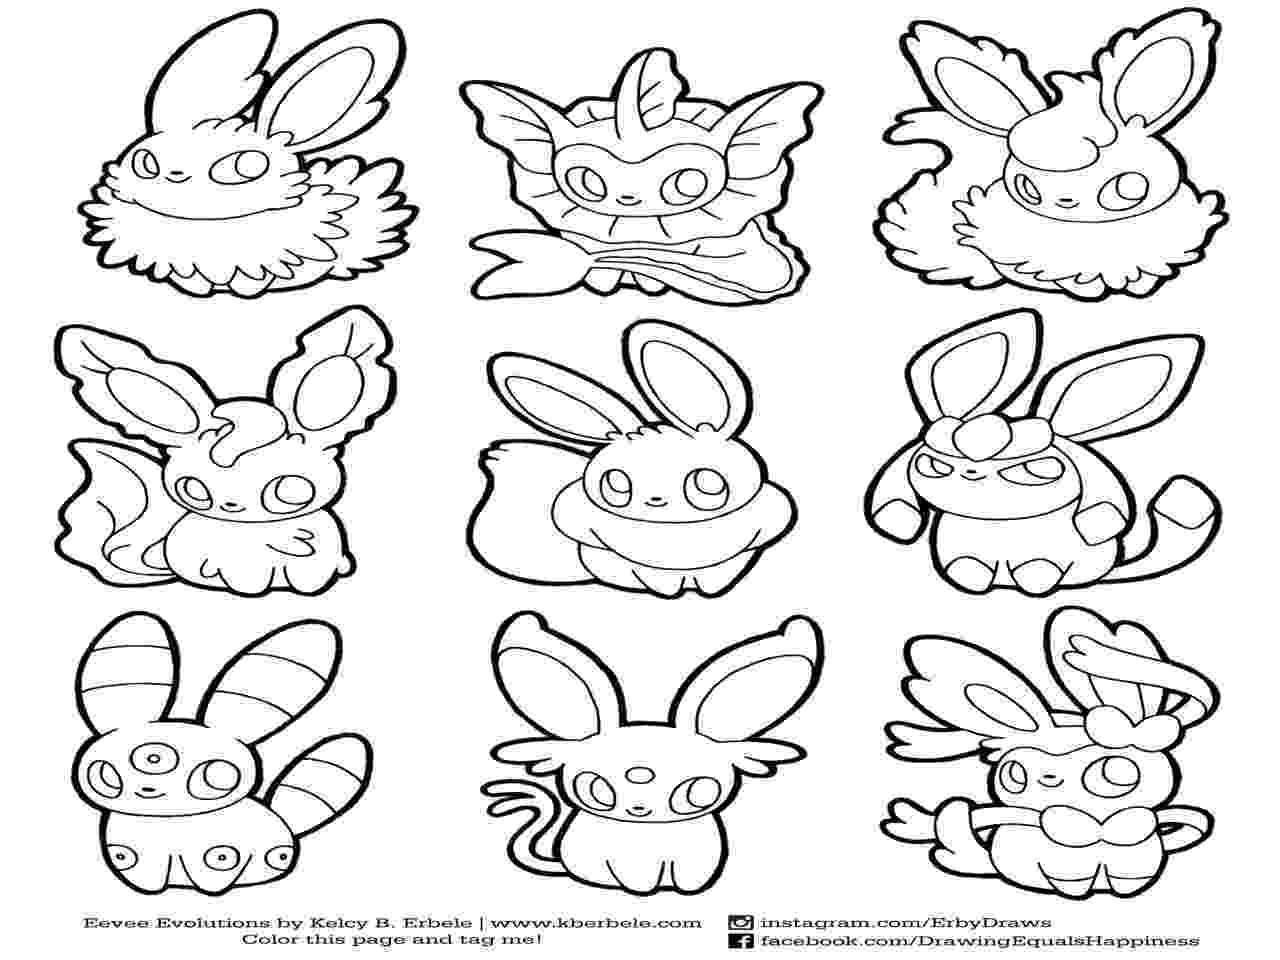 pokemon coloring pages eevee evolutions eeveelutions coloring pages at getdrawings free download pages pokemon evolutions eevee coloring